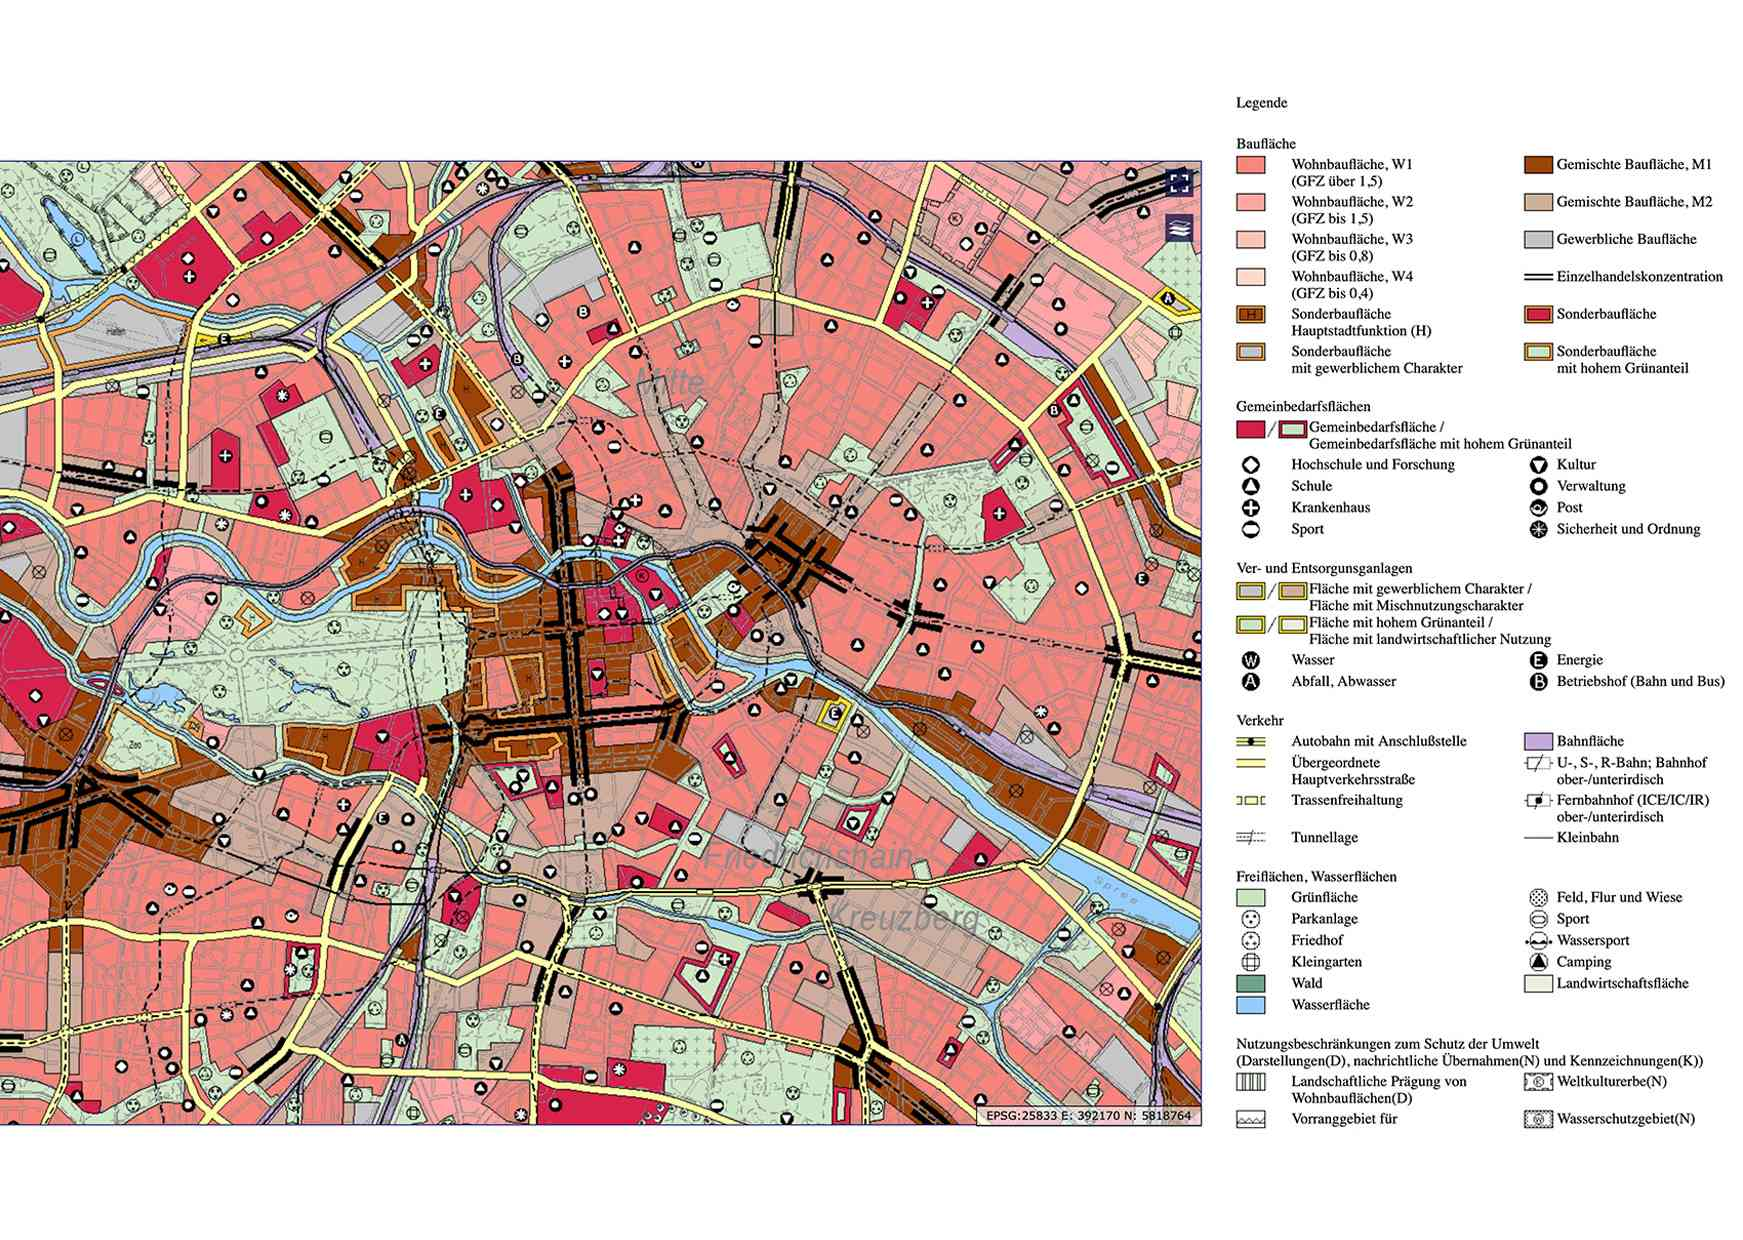 Berlin's Zoning Regulations & Land Use Map